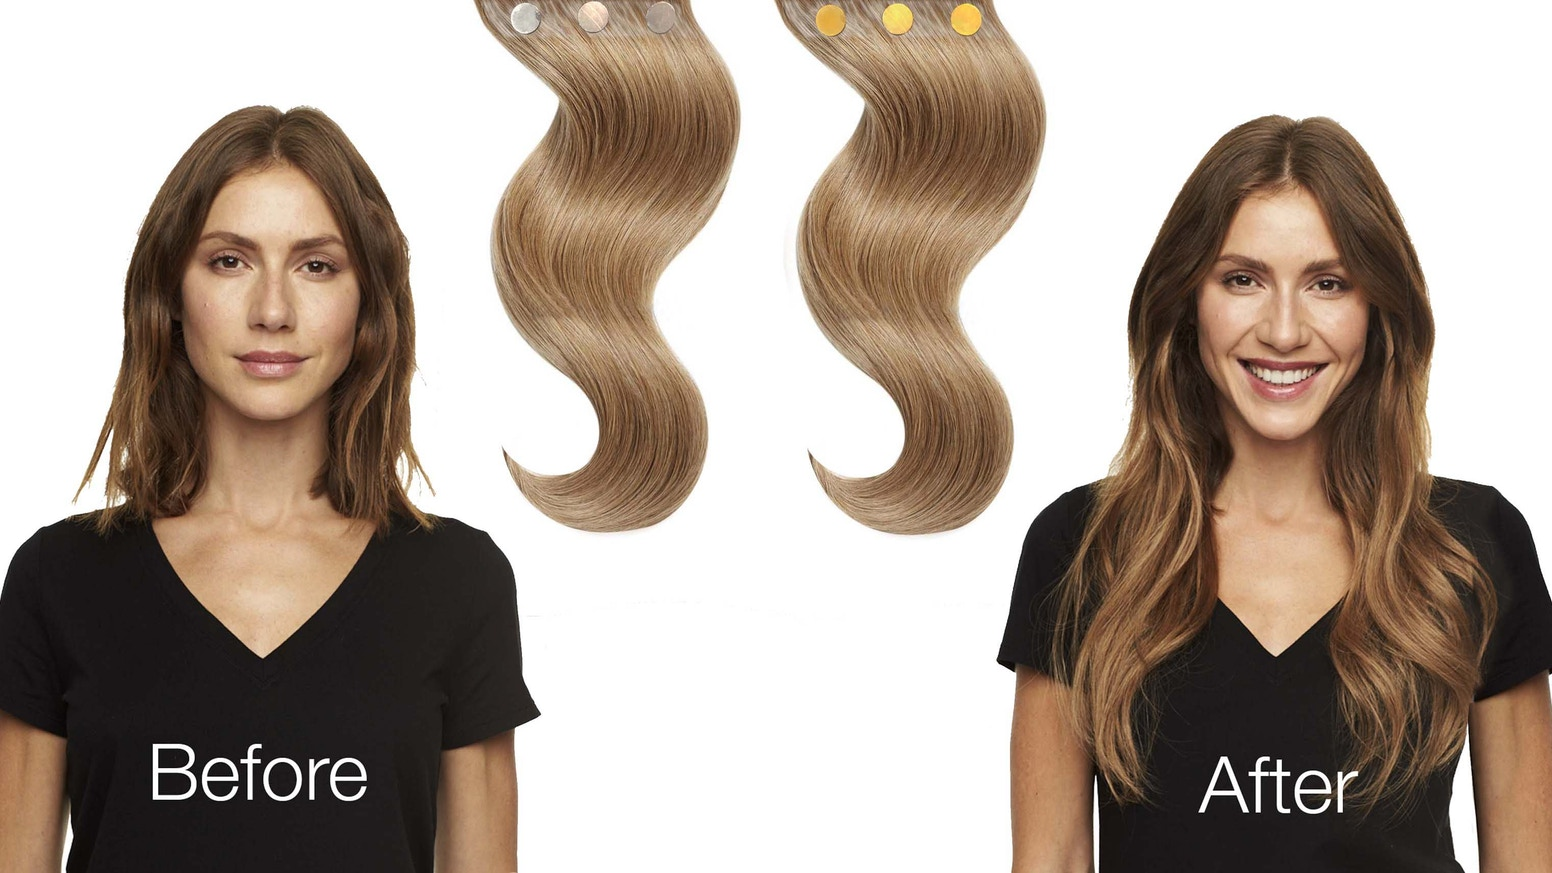 A new, revolutionary way to boost your confidence and mood through fuller hair and magnet therapy.